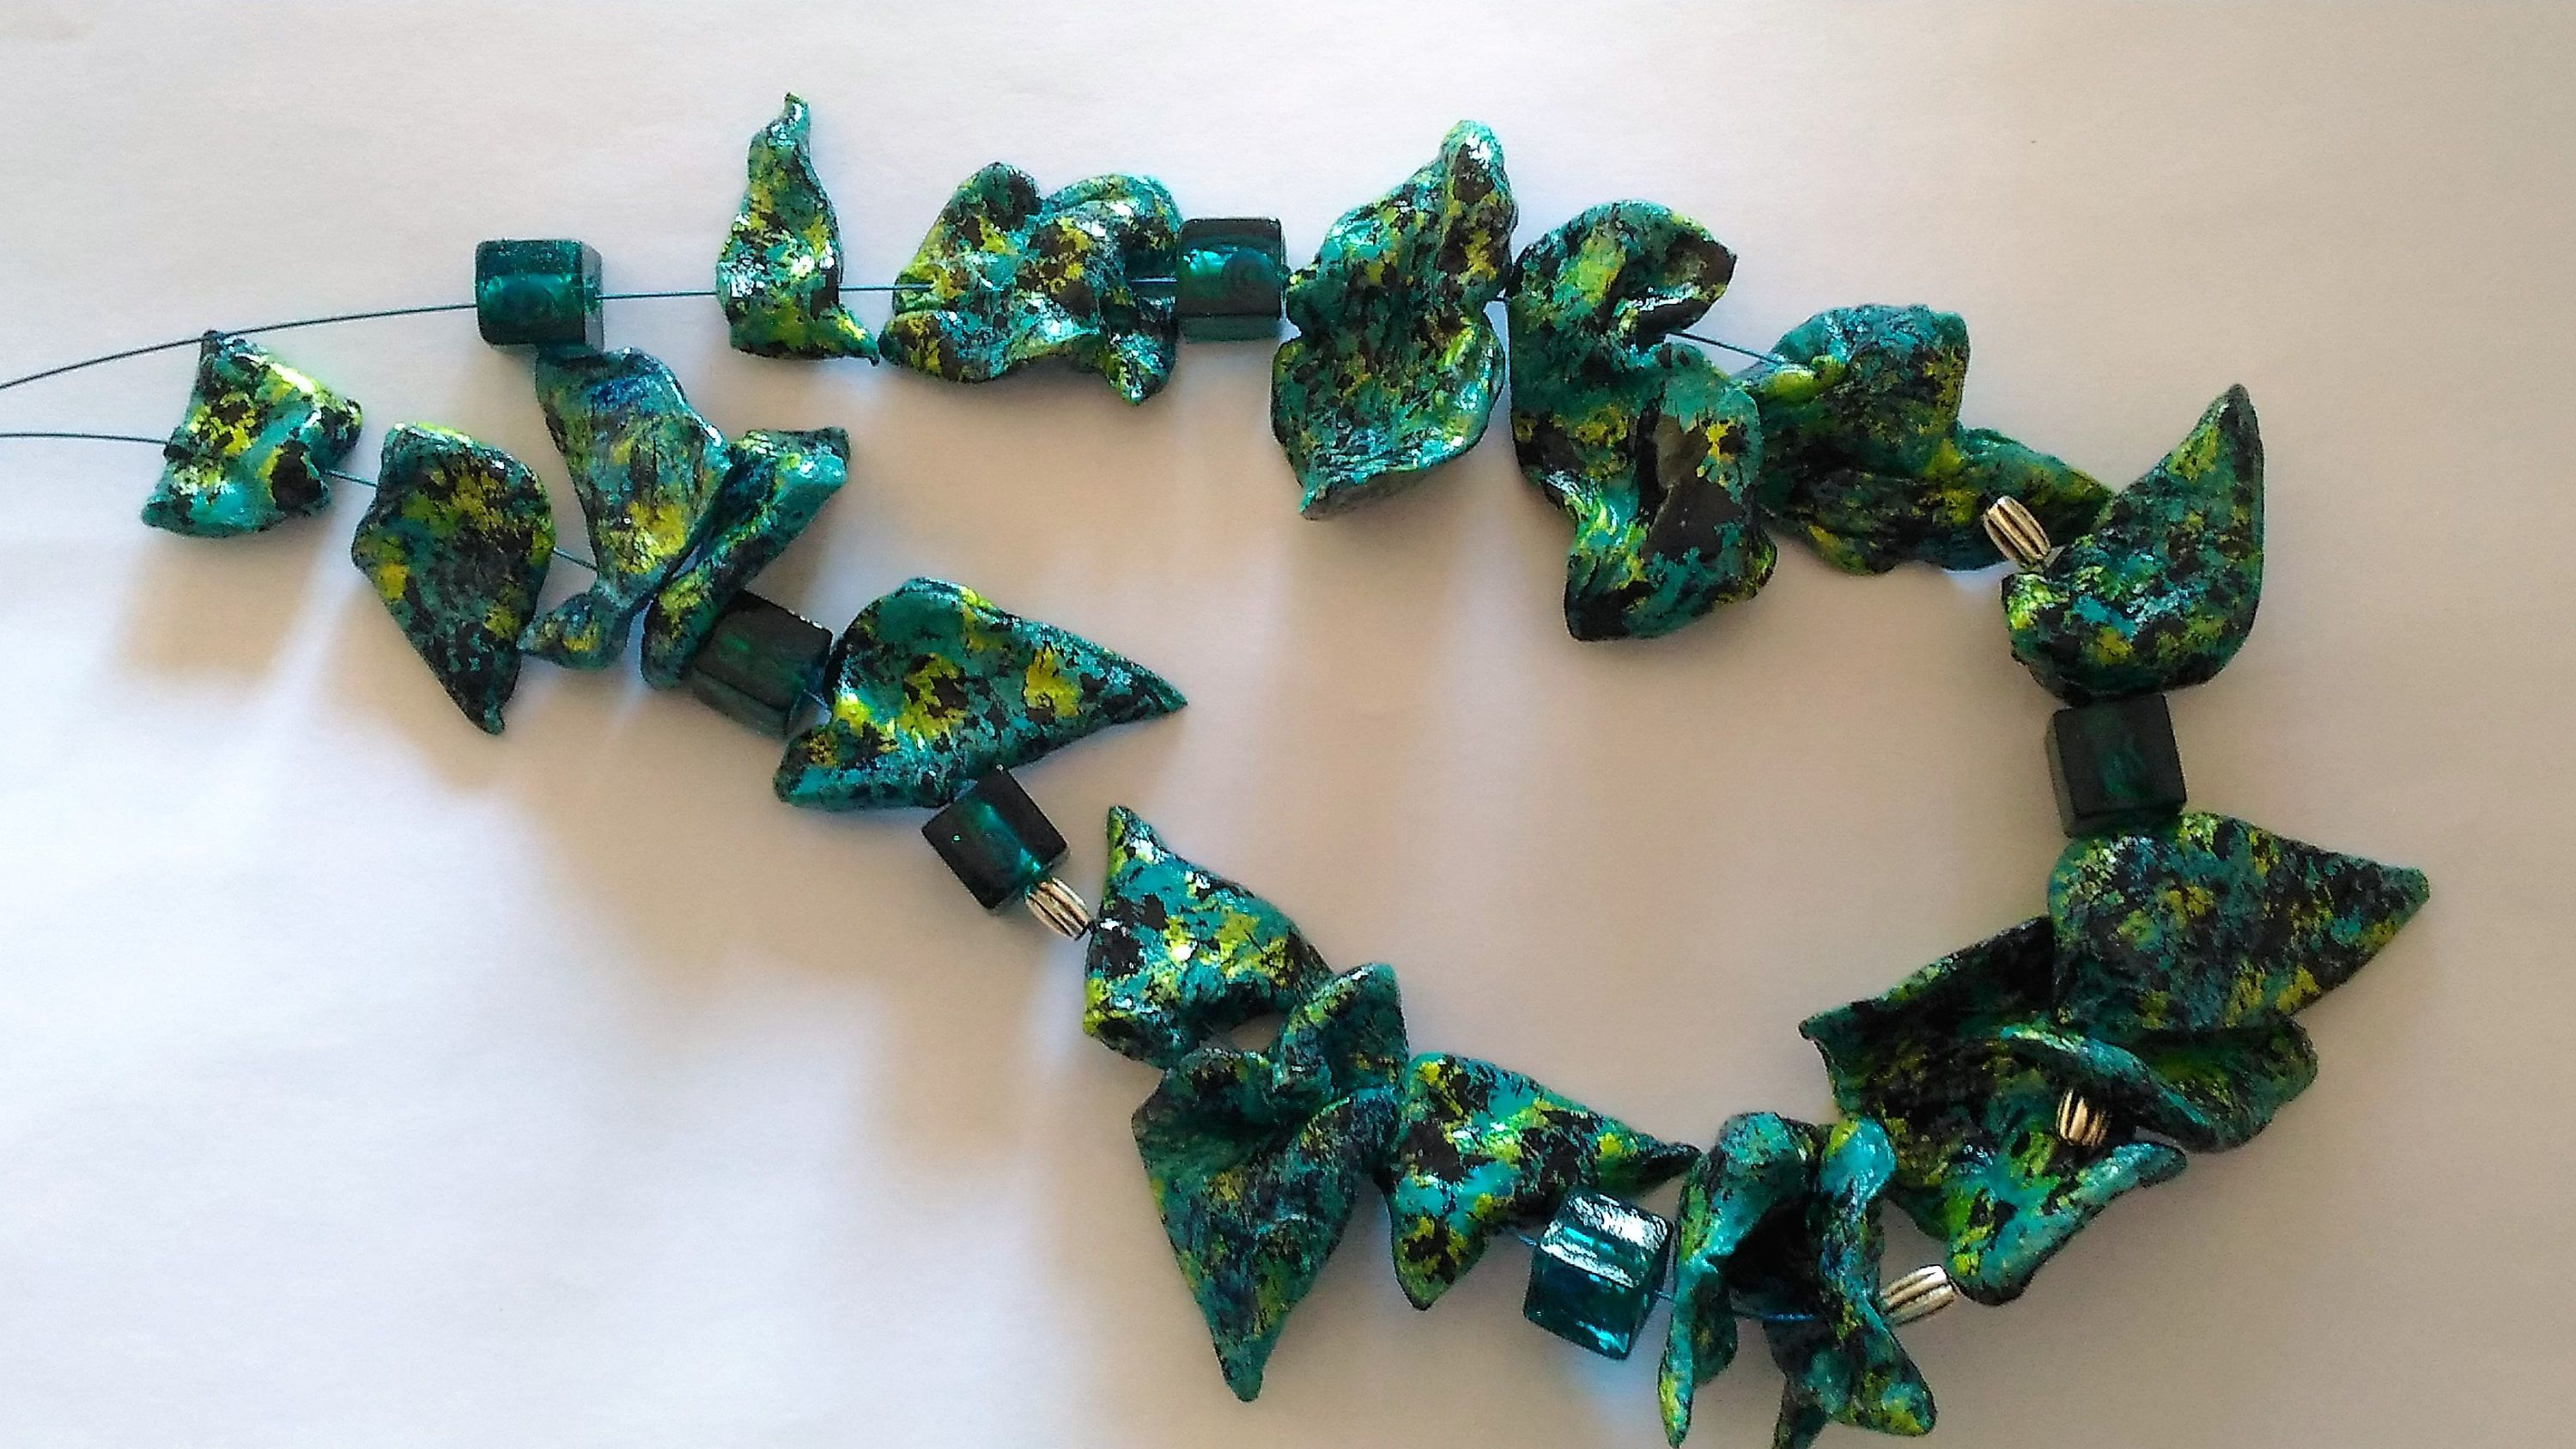 Handmade Necklace Paper Mache Beads Turquoise Iridescent Green By Cartalexitaly On Etsy Diy Necklace Making Handmade Necklaces Diy Necklace